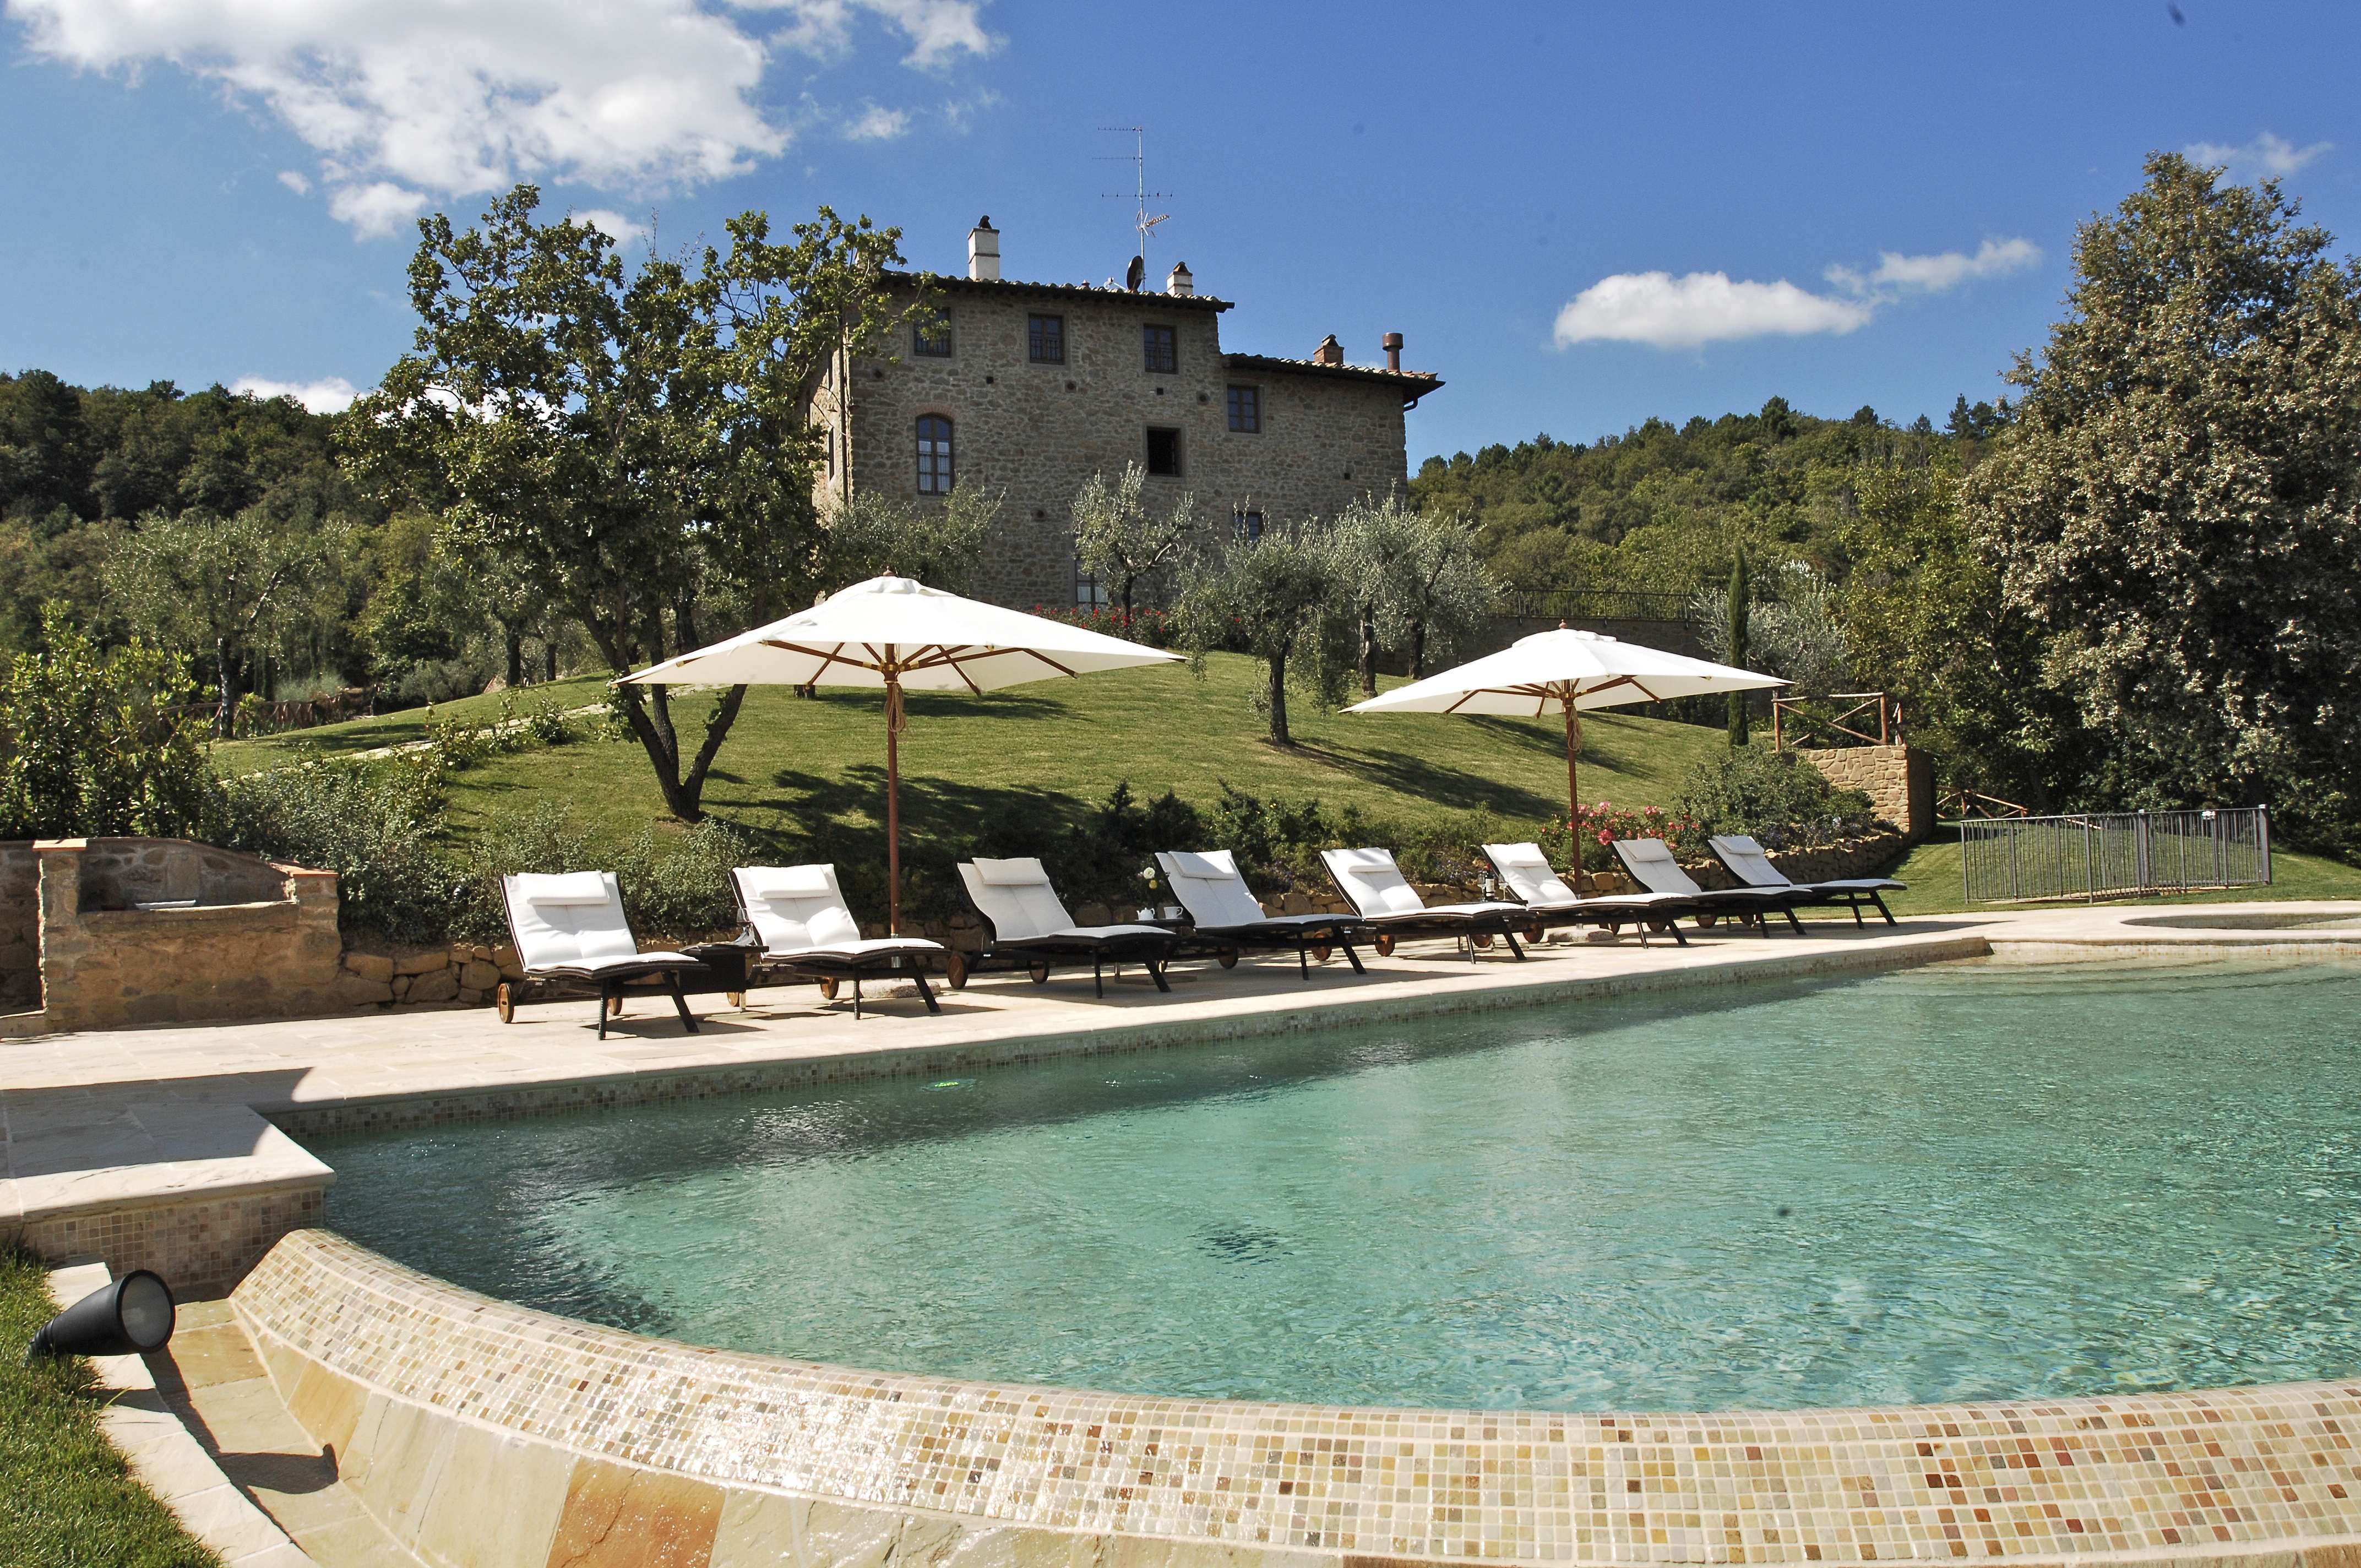 Charming rustic boutique villa in Tuscany